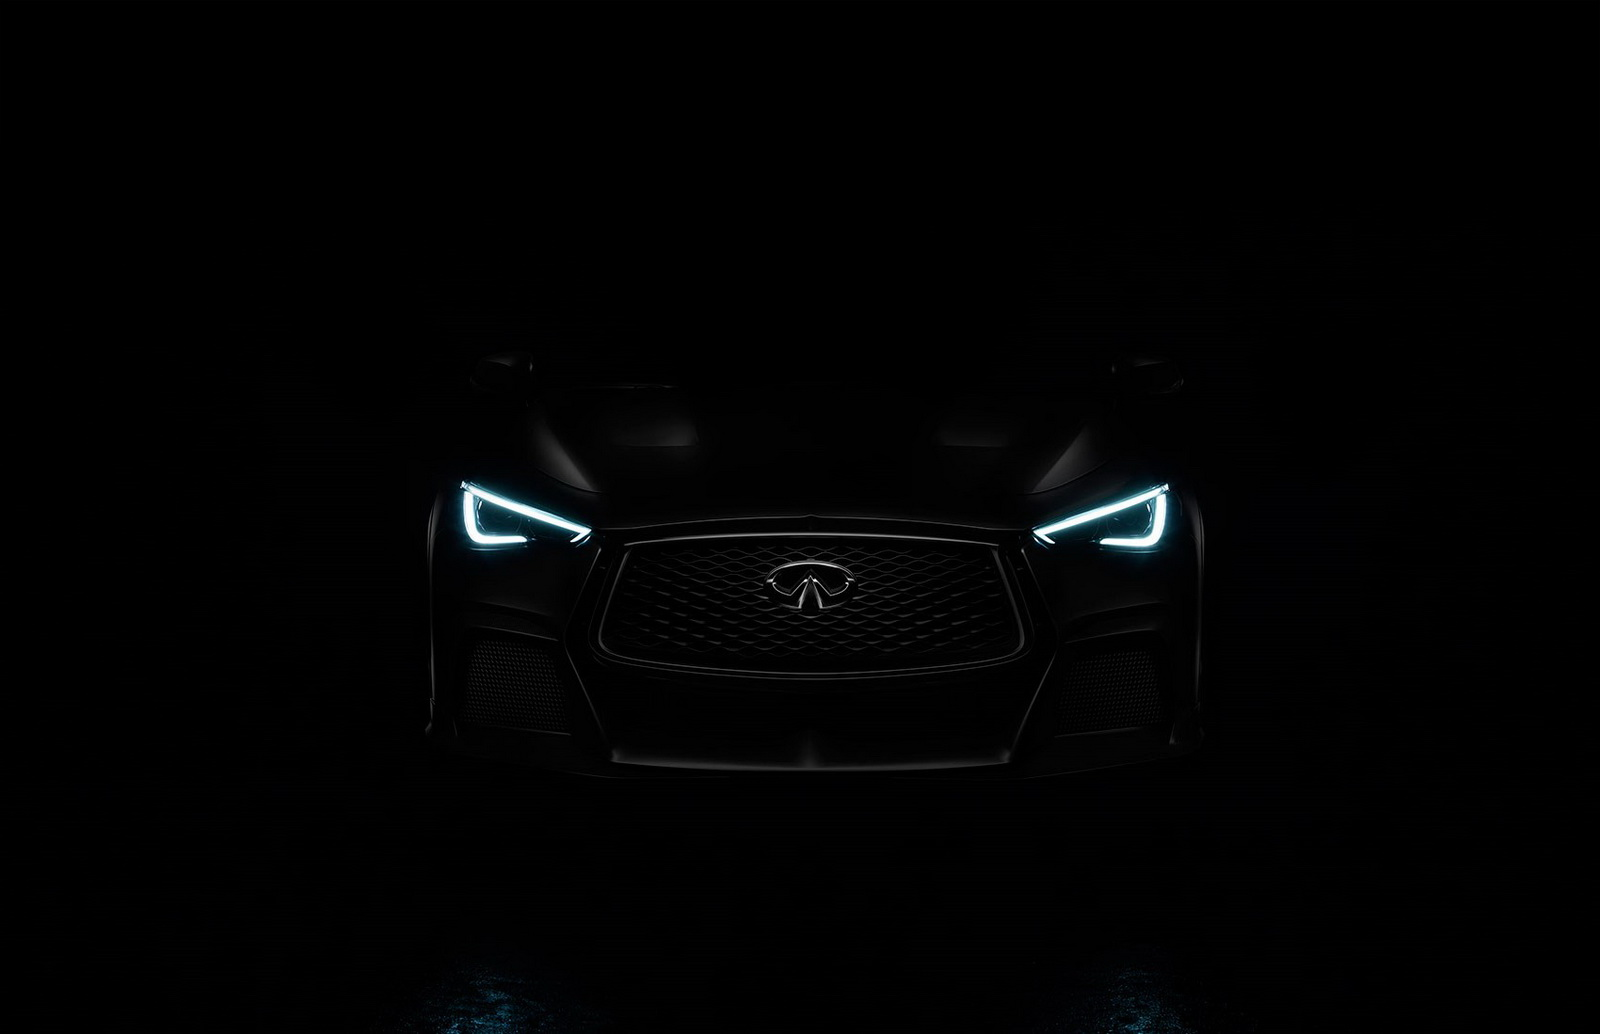 infiniti q60 blacked out. blocking ads can be devastating to sites you love and result in people losing their jobs negatively affect the quality of content infiniti q60 blacked out